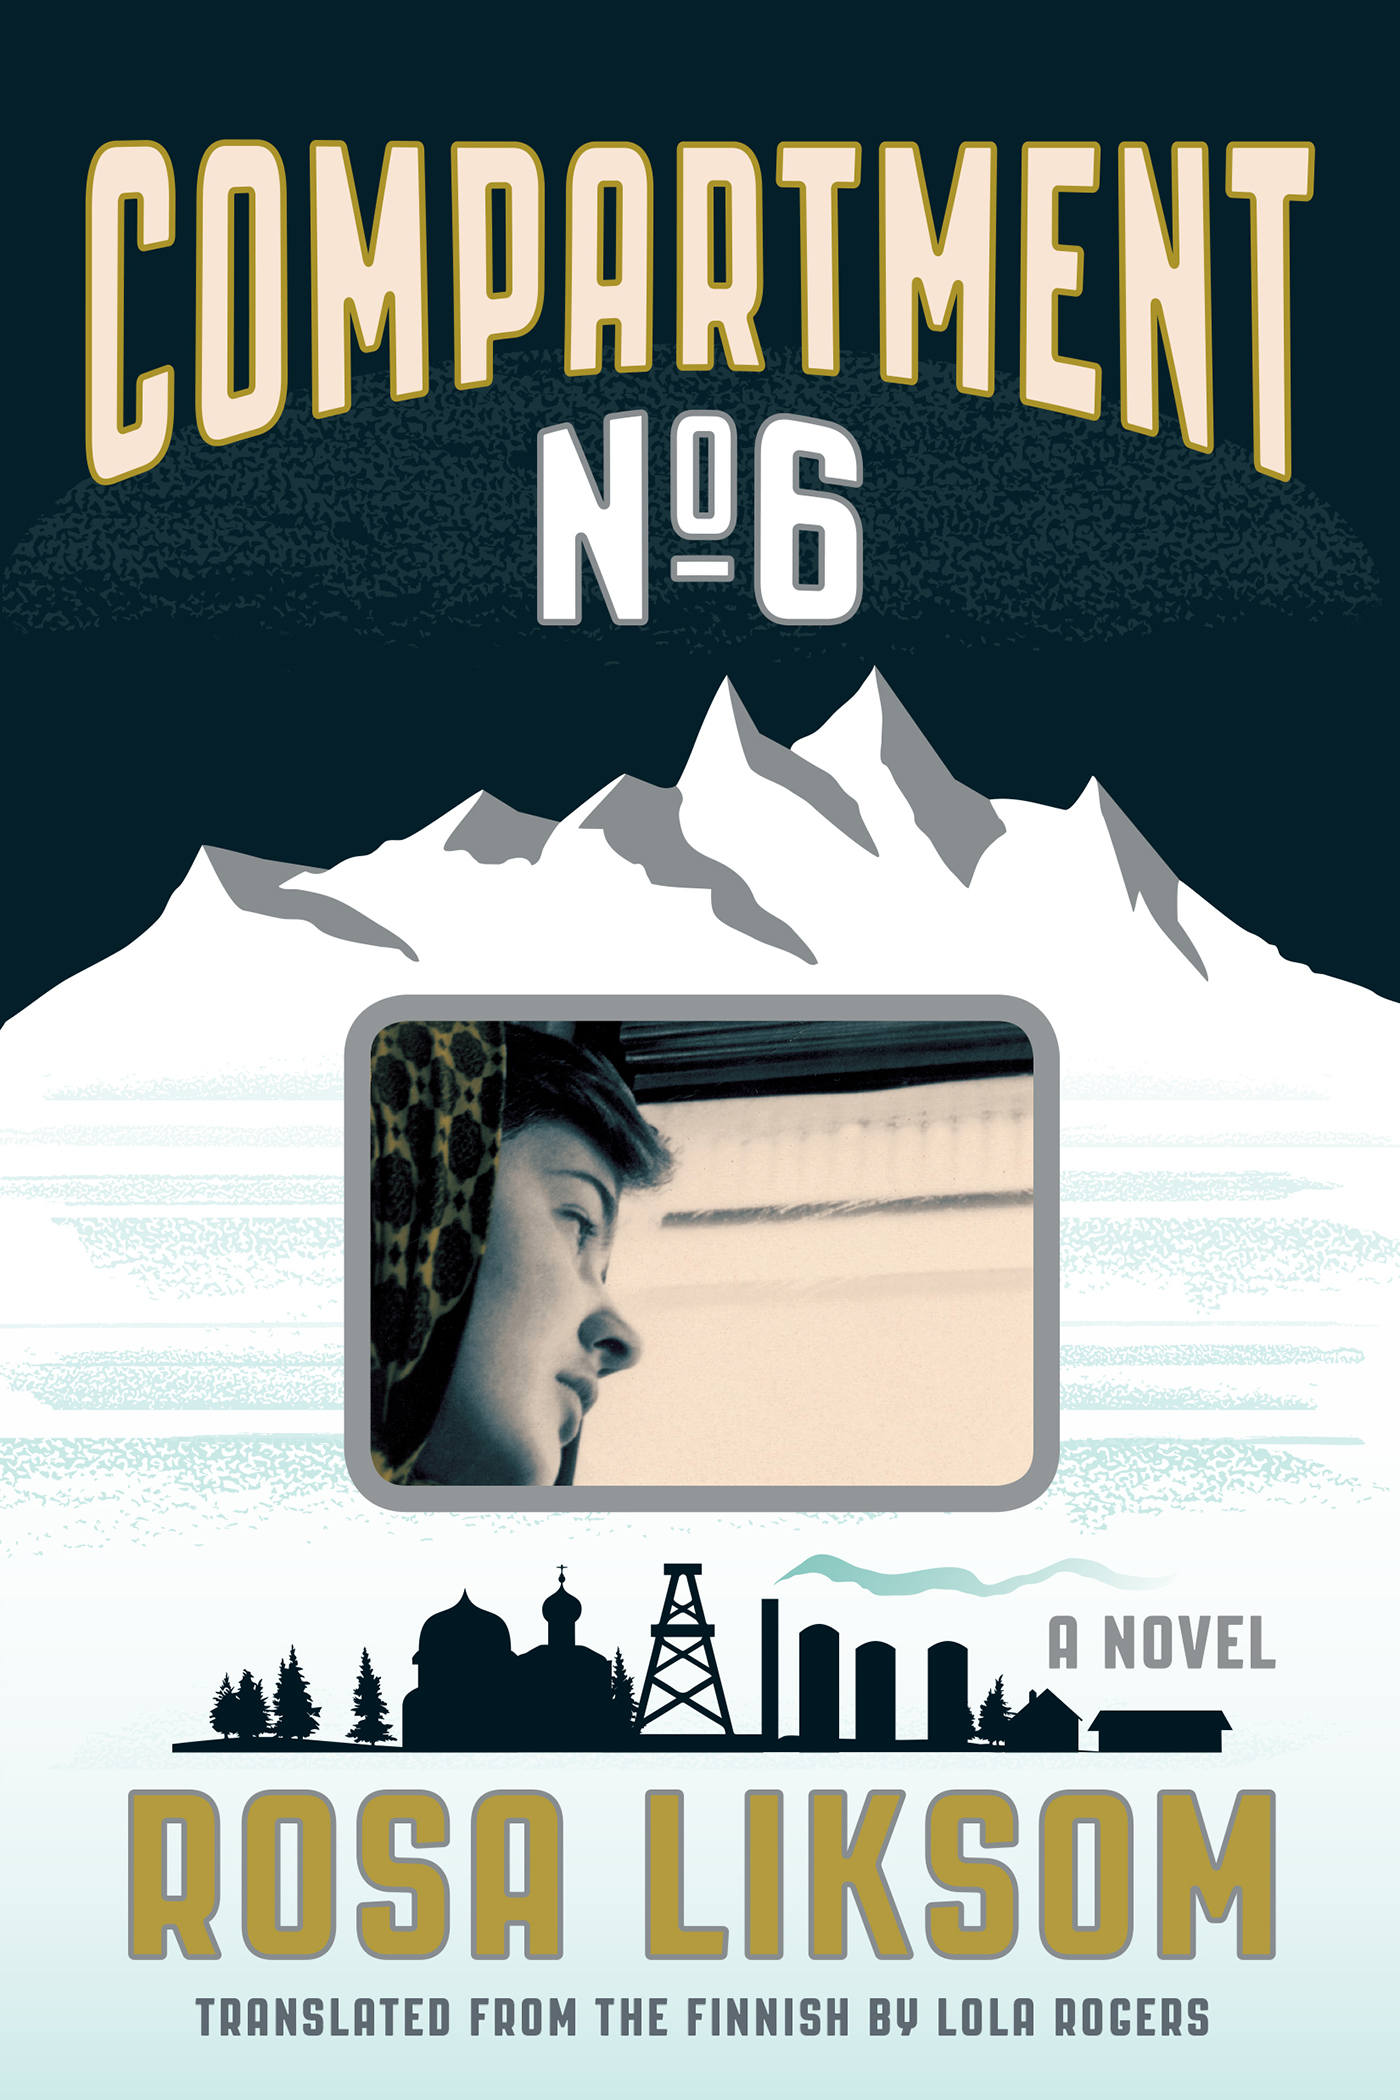 Image of cover of Compartment No. 6